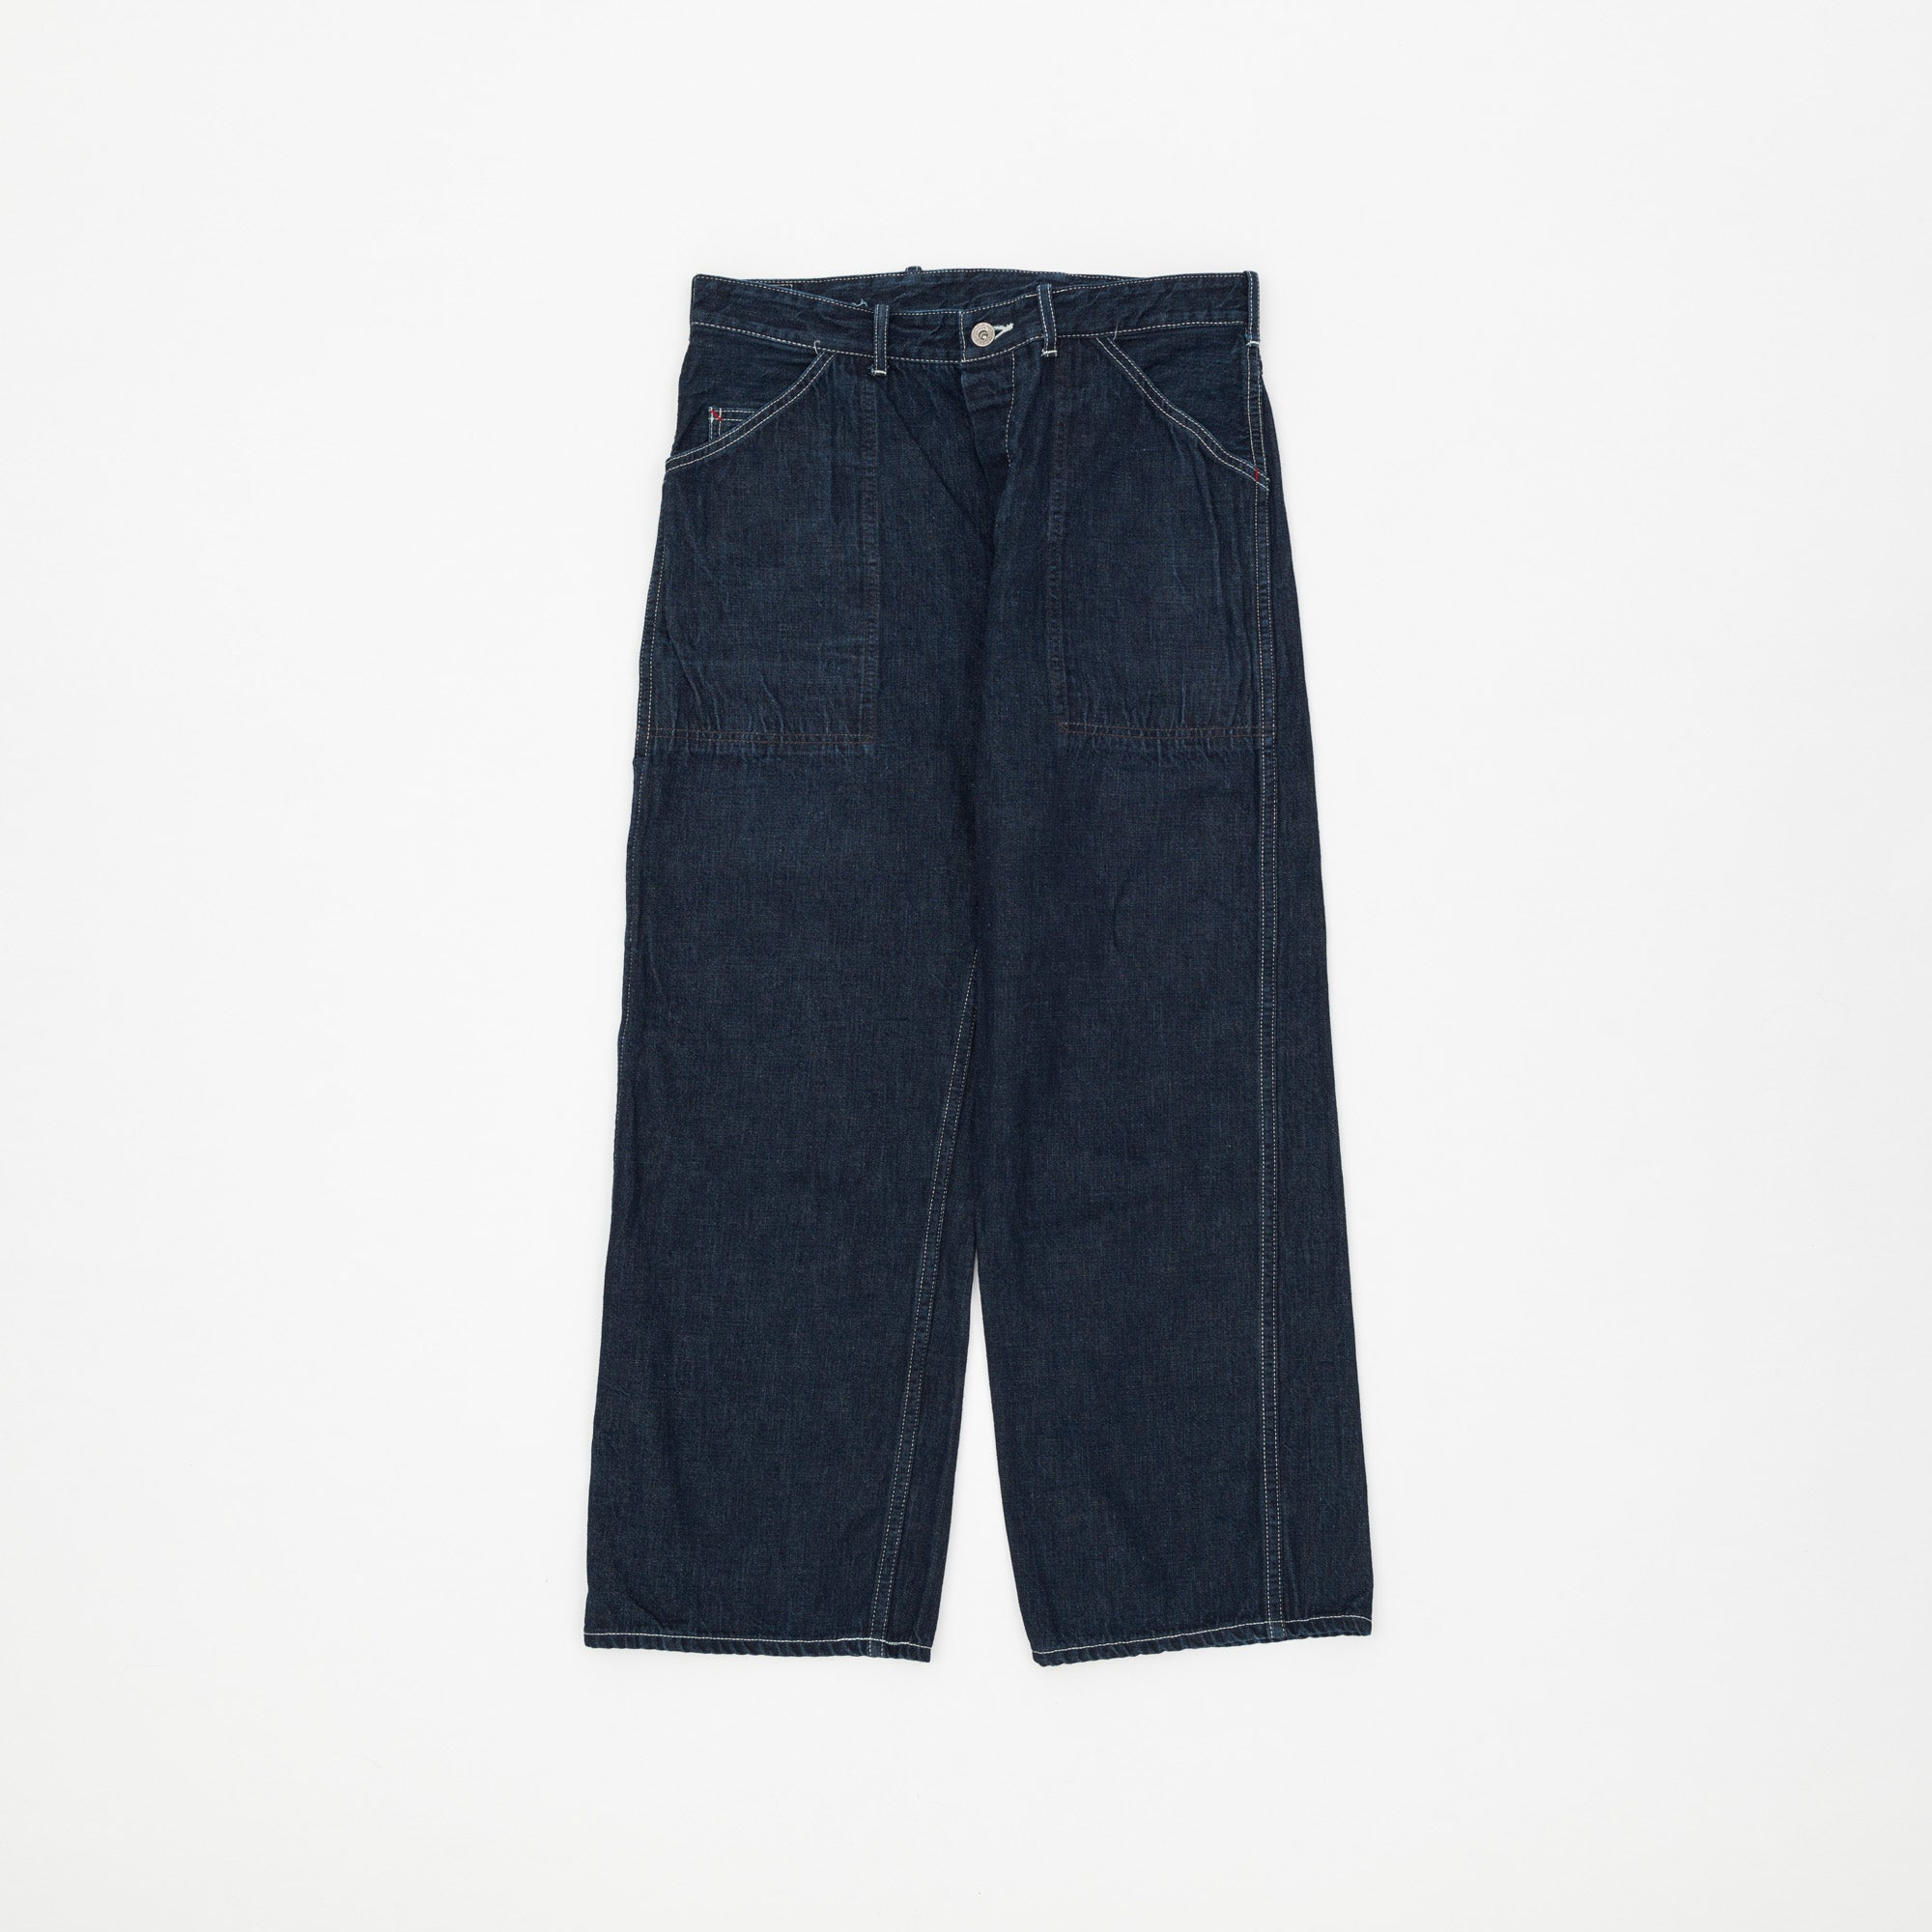 Joe McCoy 8HU Lot 771 Work Denim Pant